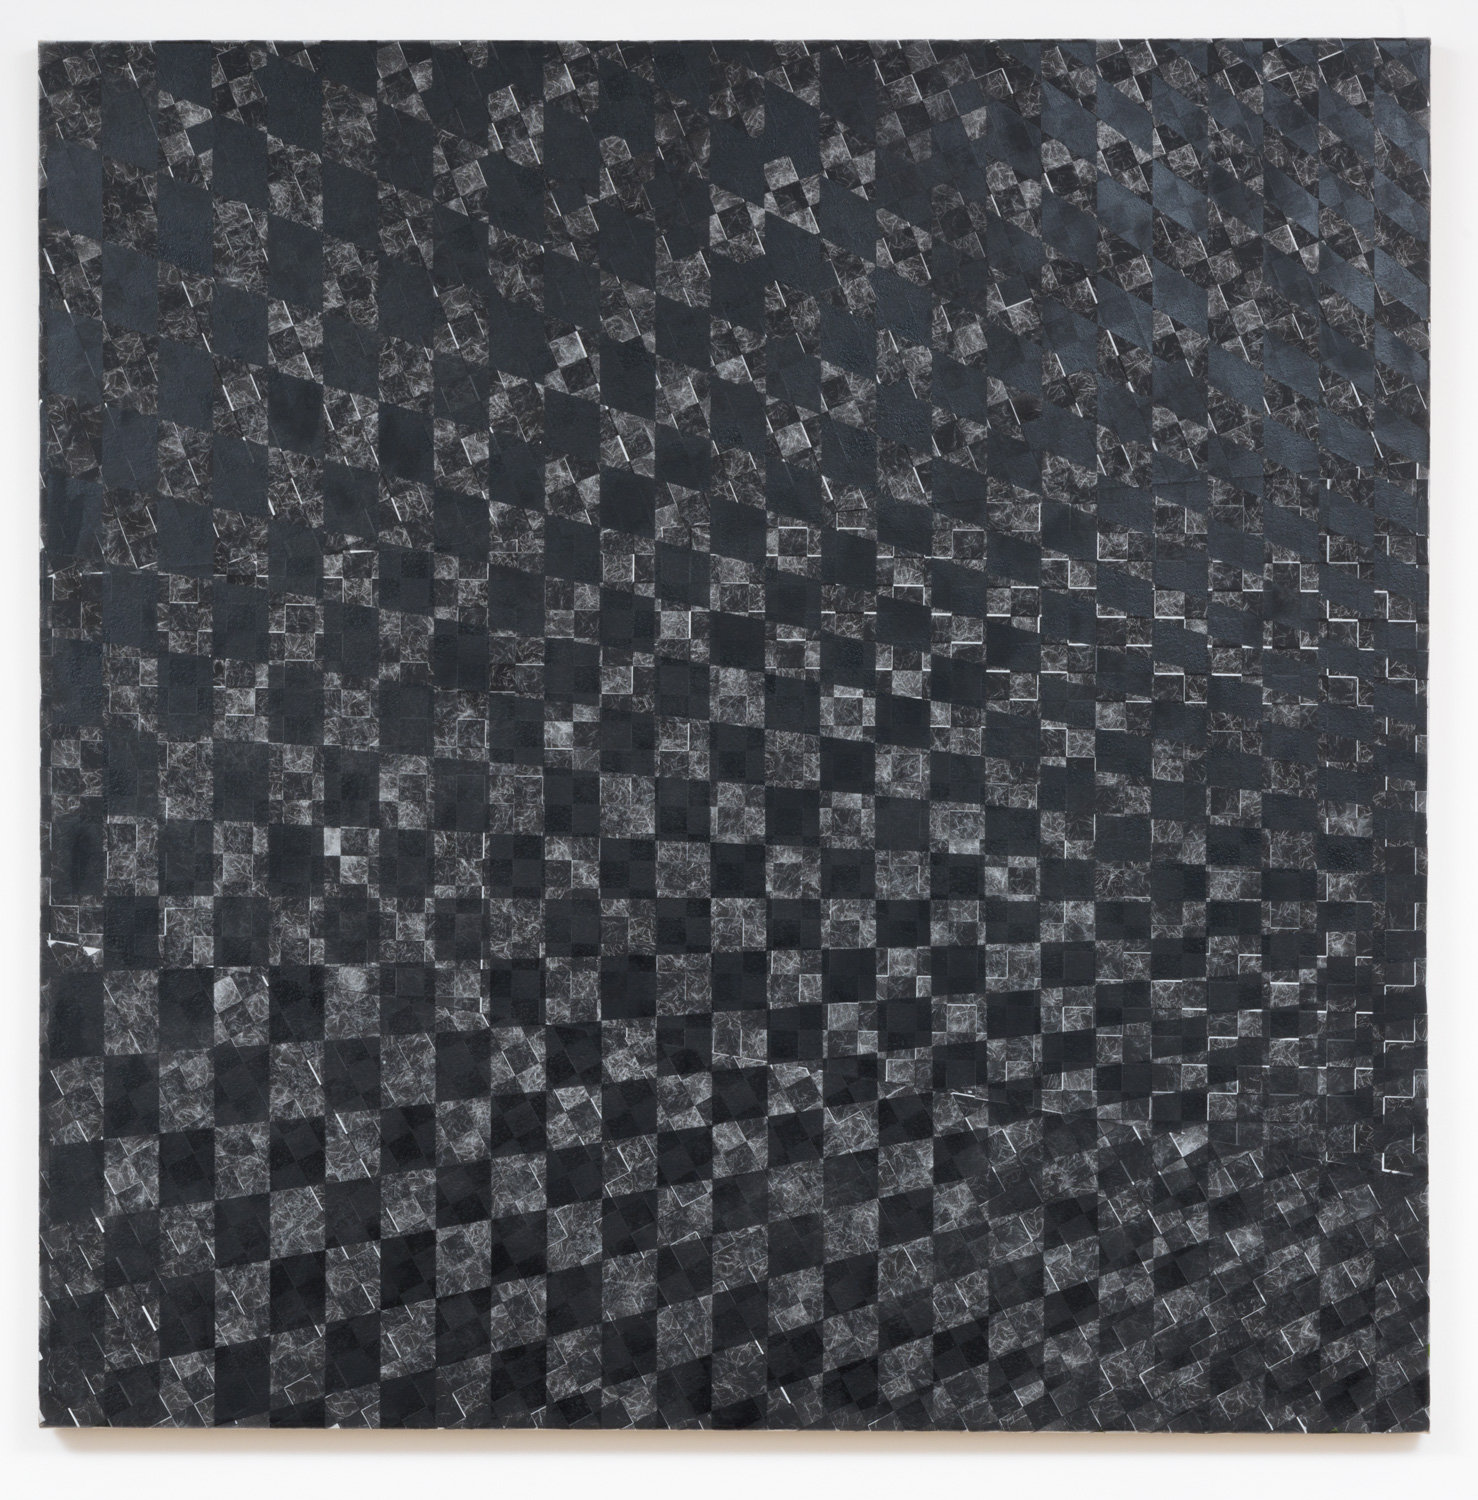 Danny Jauregui   Untitled 9  (2015) Enamel and human hair on canvas, 48 x 48in.